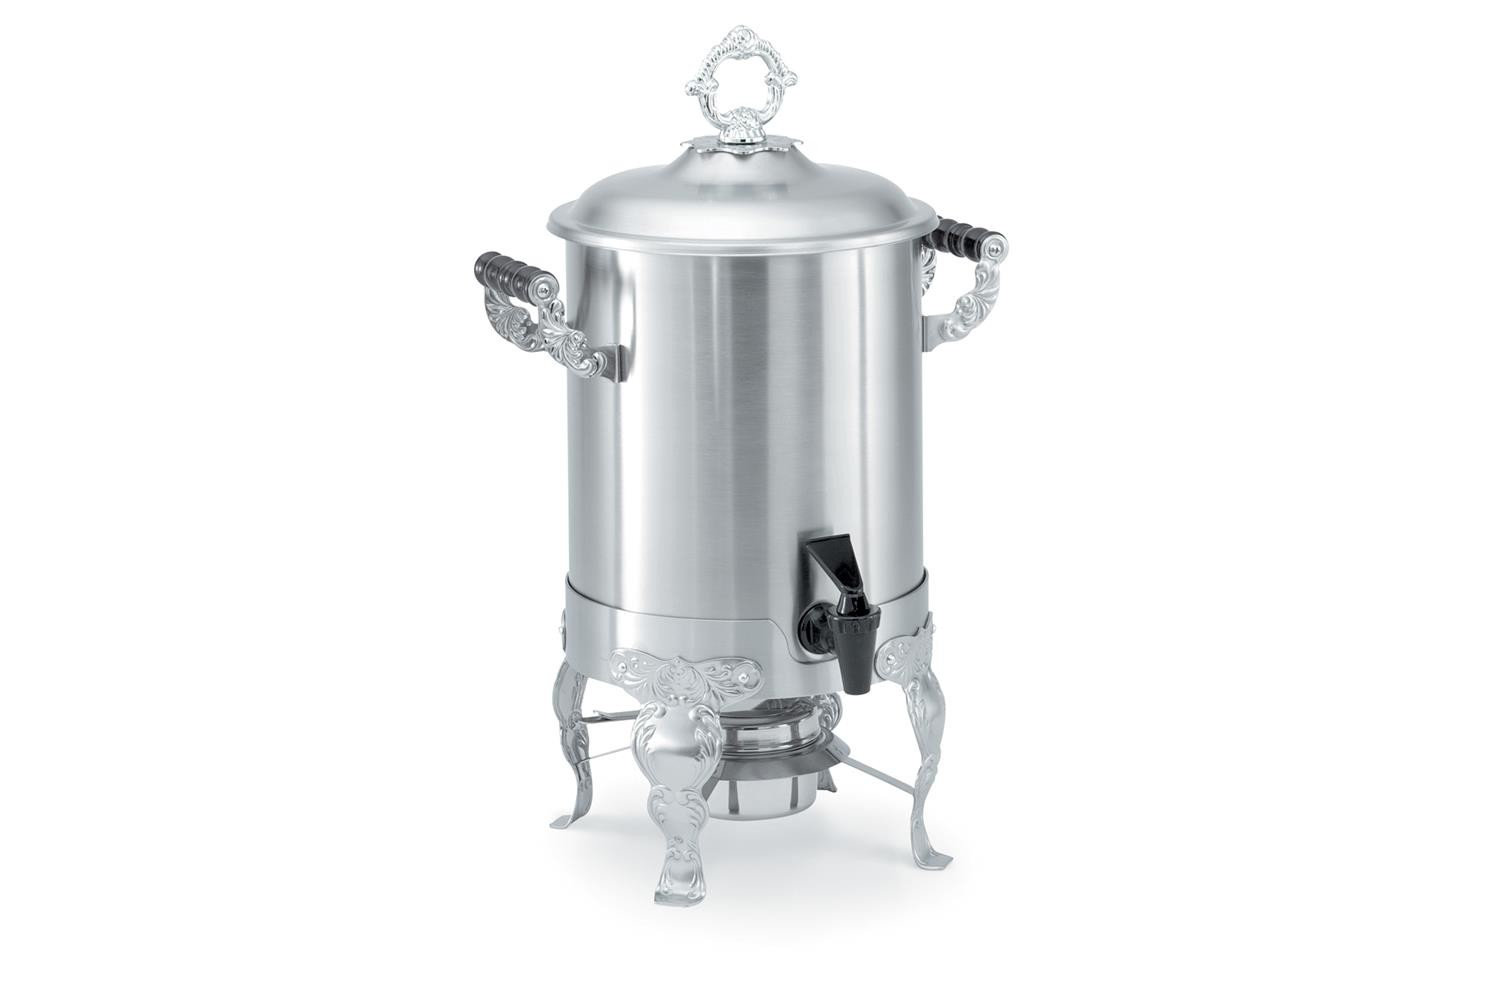 Vollrath 46884 Royal Crest 3 Gallon Coffee Urn